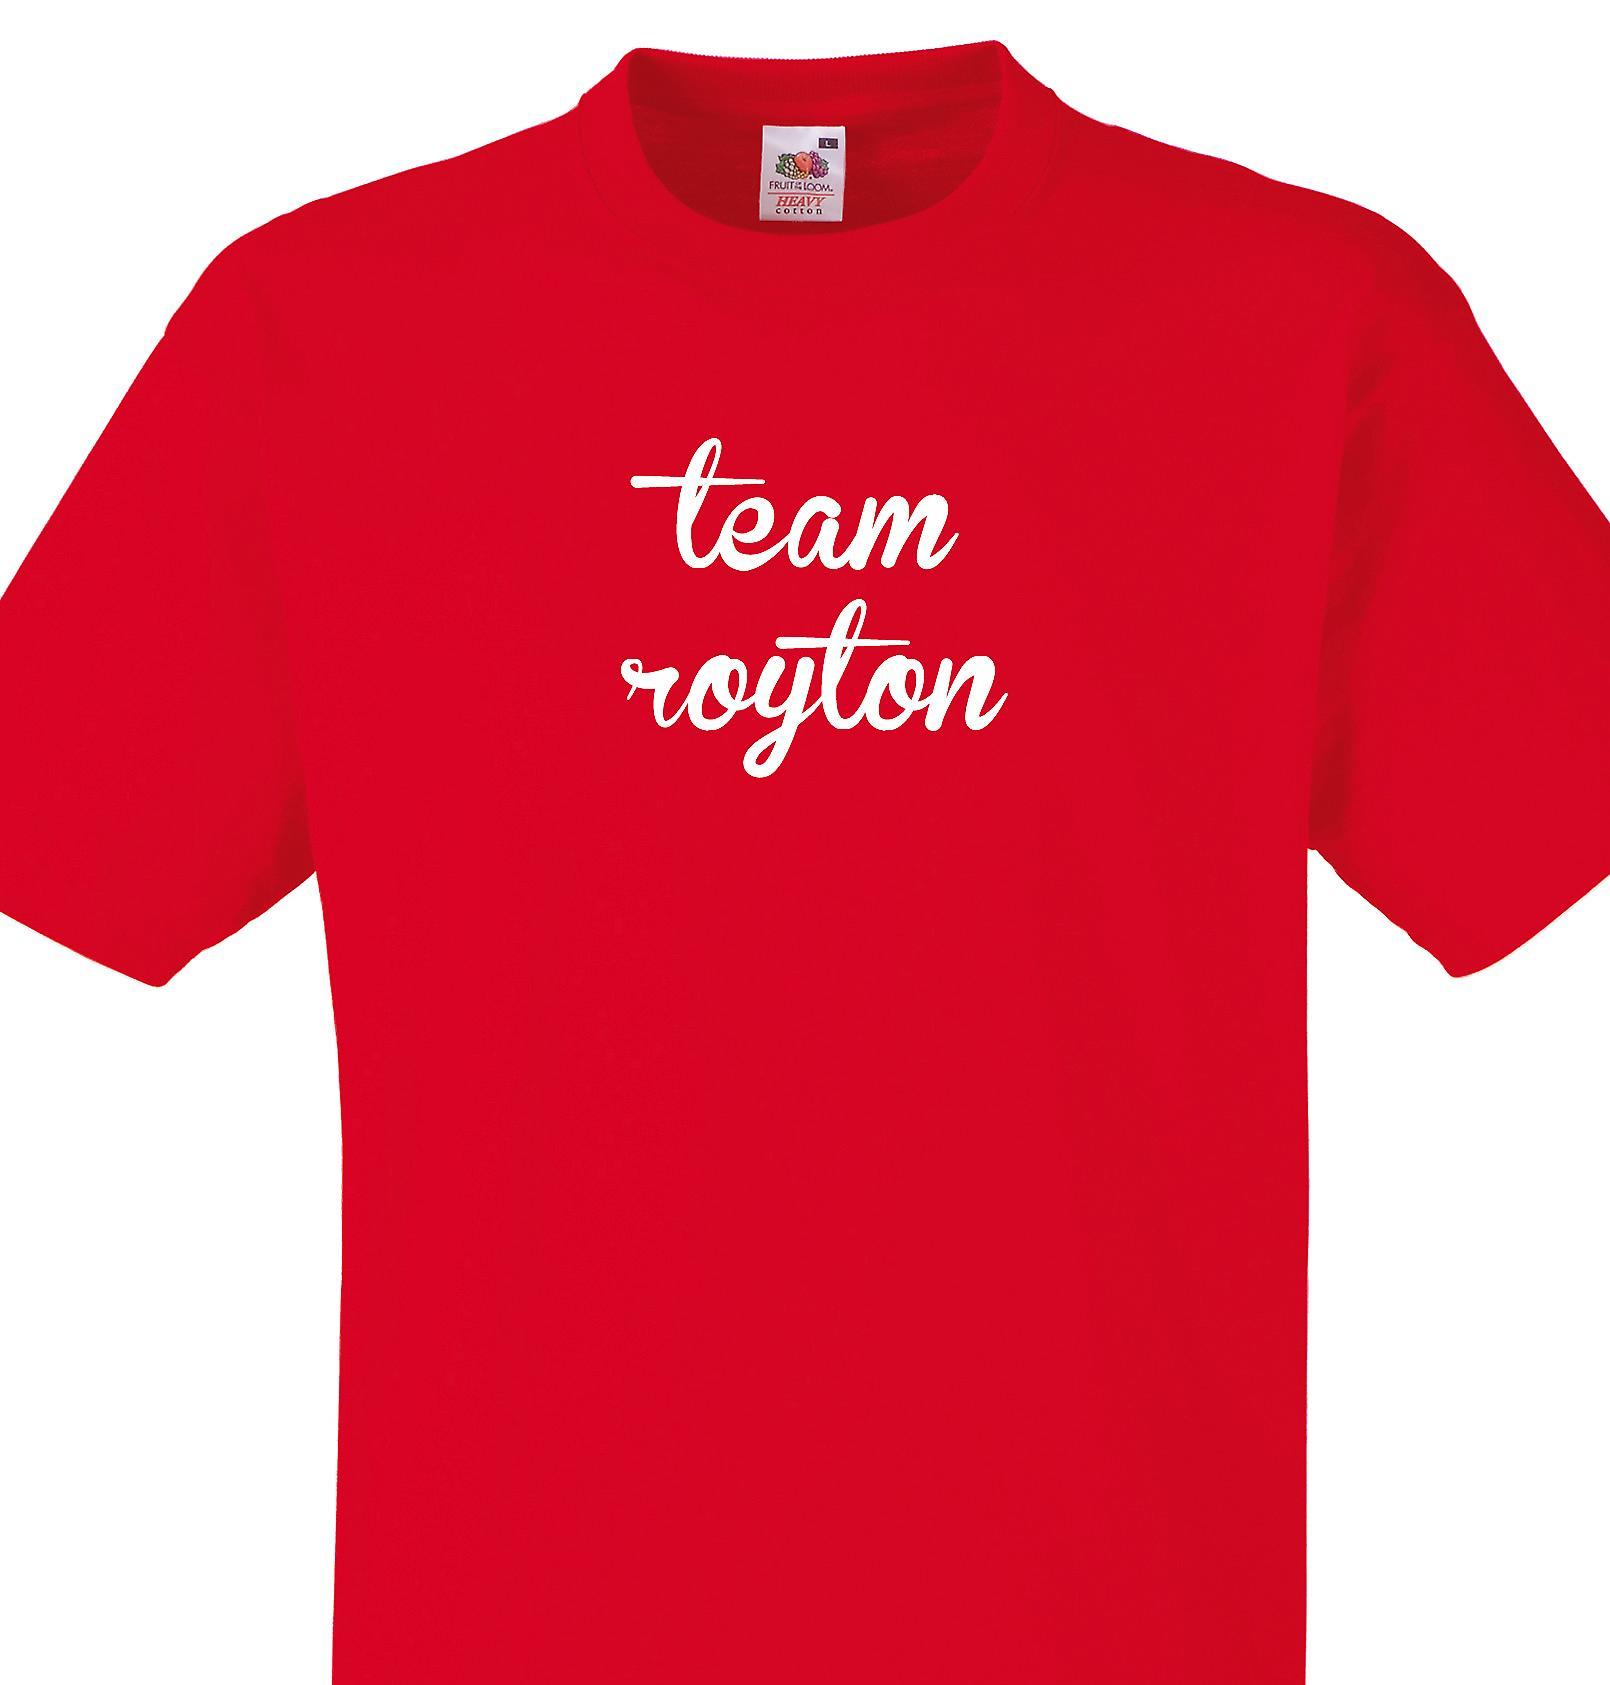 Team Royton Red T shirt